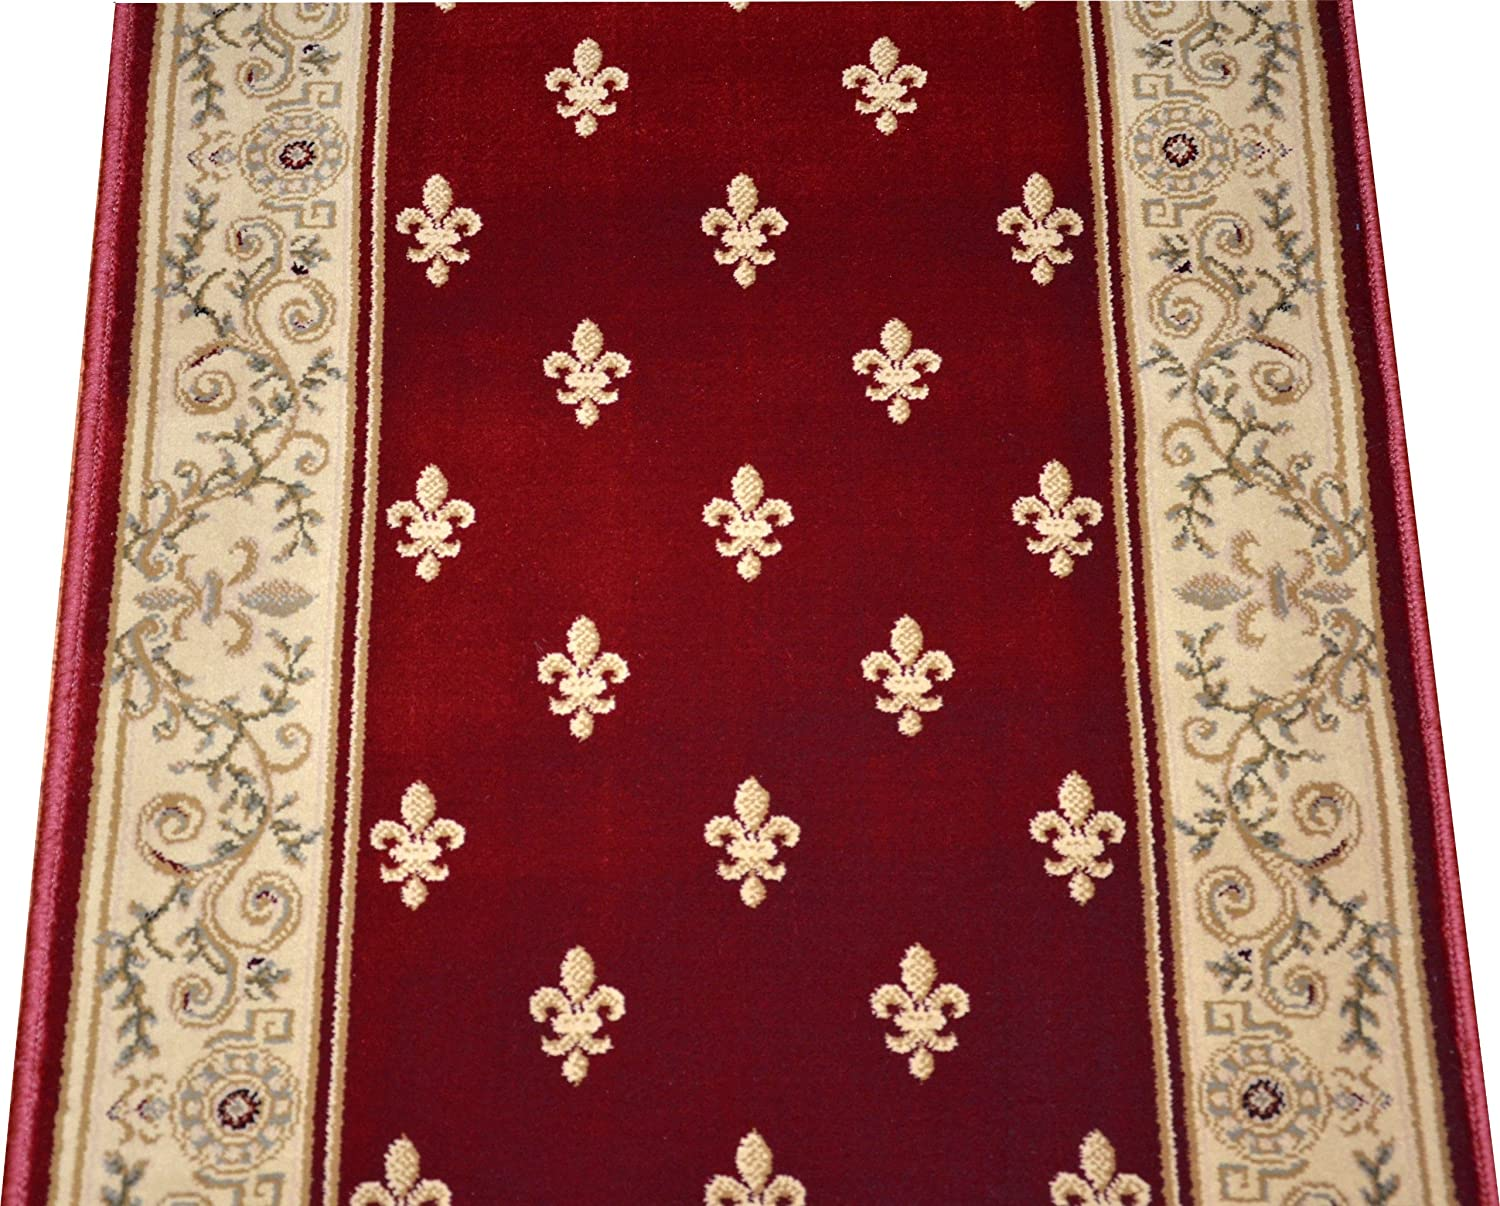 amazoncom dean regal red carpet rug hallway stair runner purchase by the linear foot industrial u0026 scientific